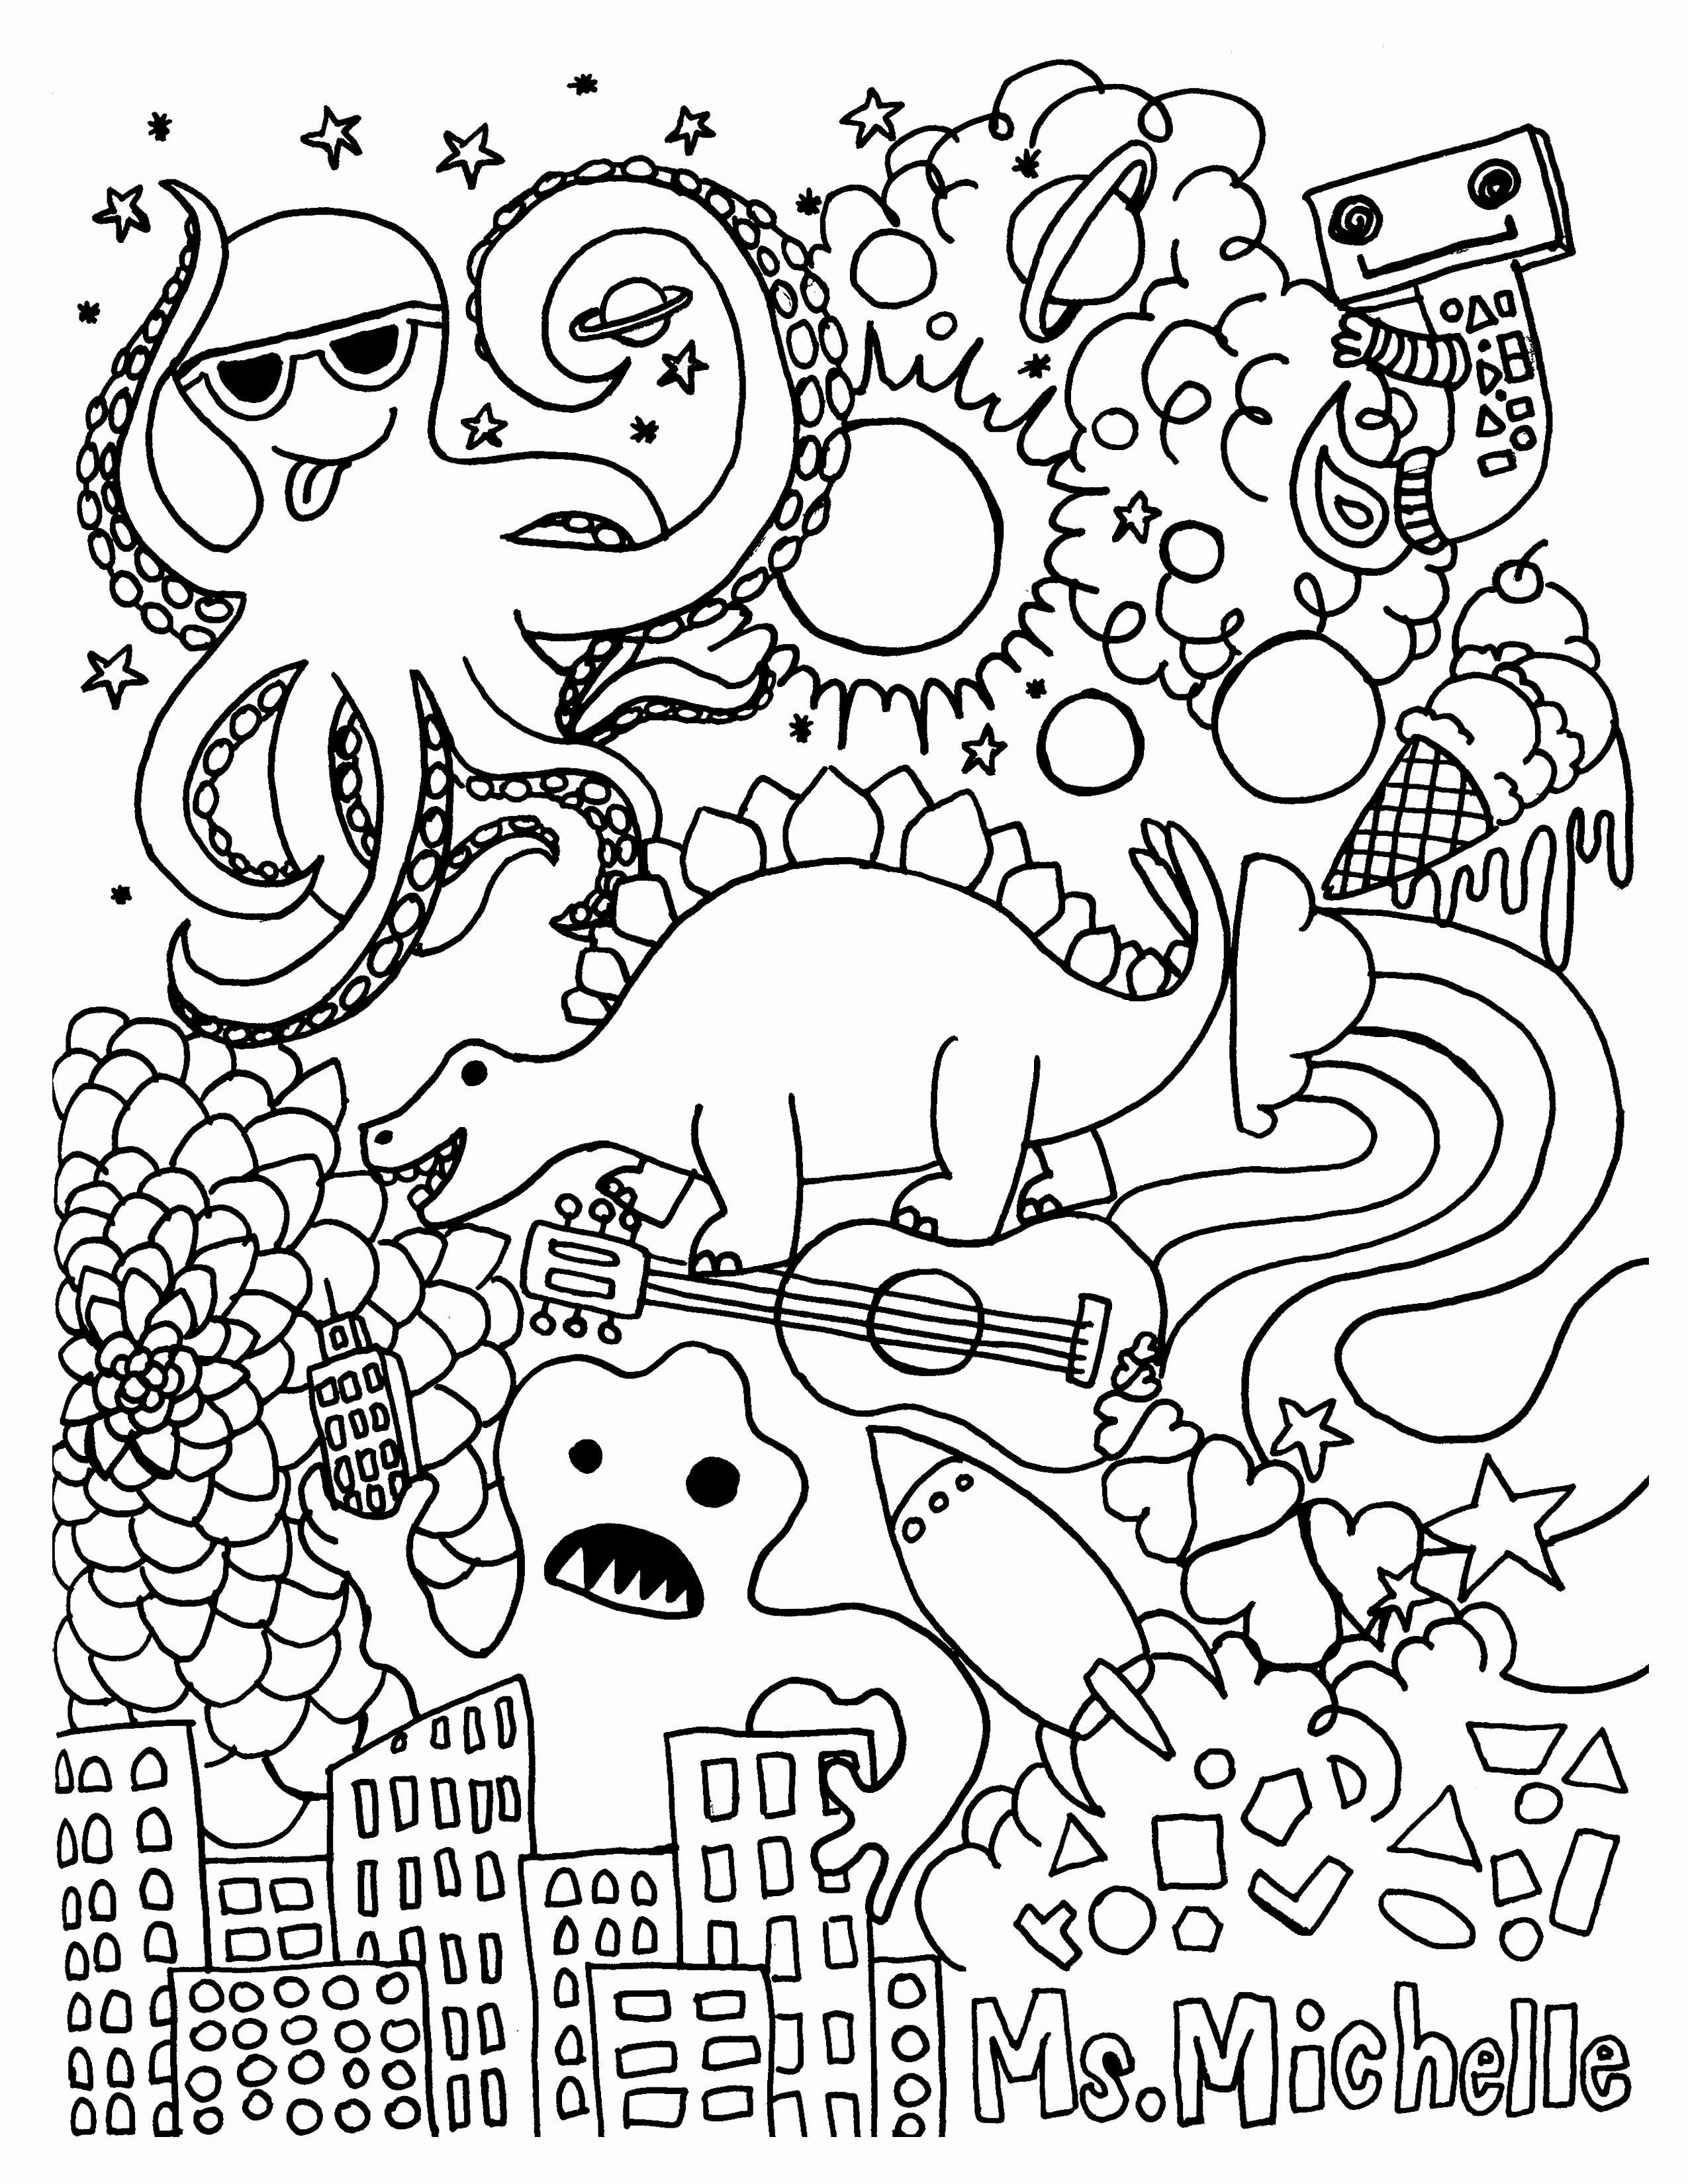 mindful coloring pages Download-Coloring Pages Mermaids Mermaid Princess Coloring Pages Free Coloring Sheets 13-q